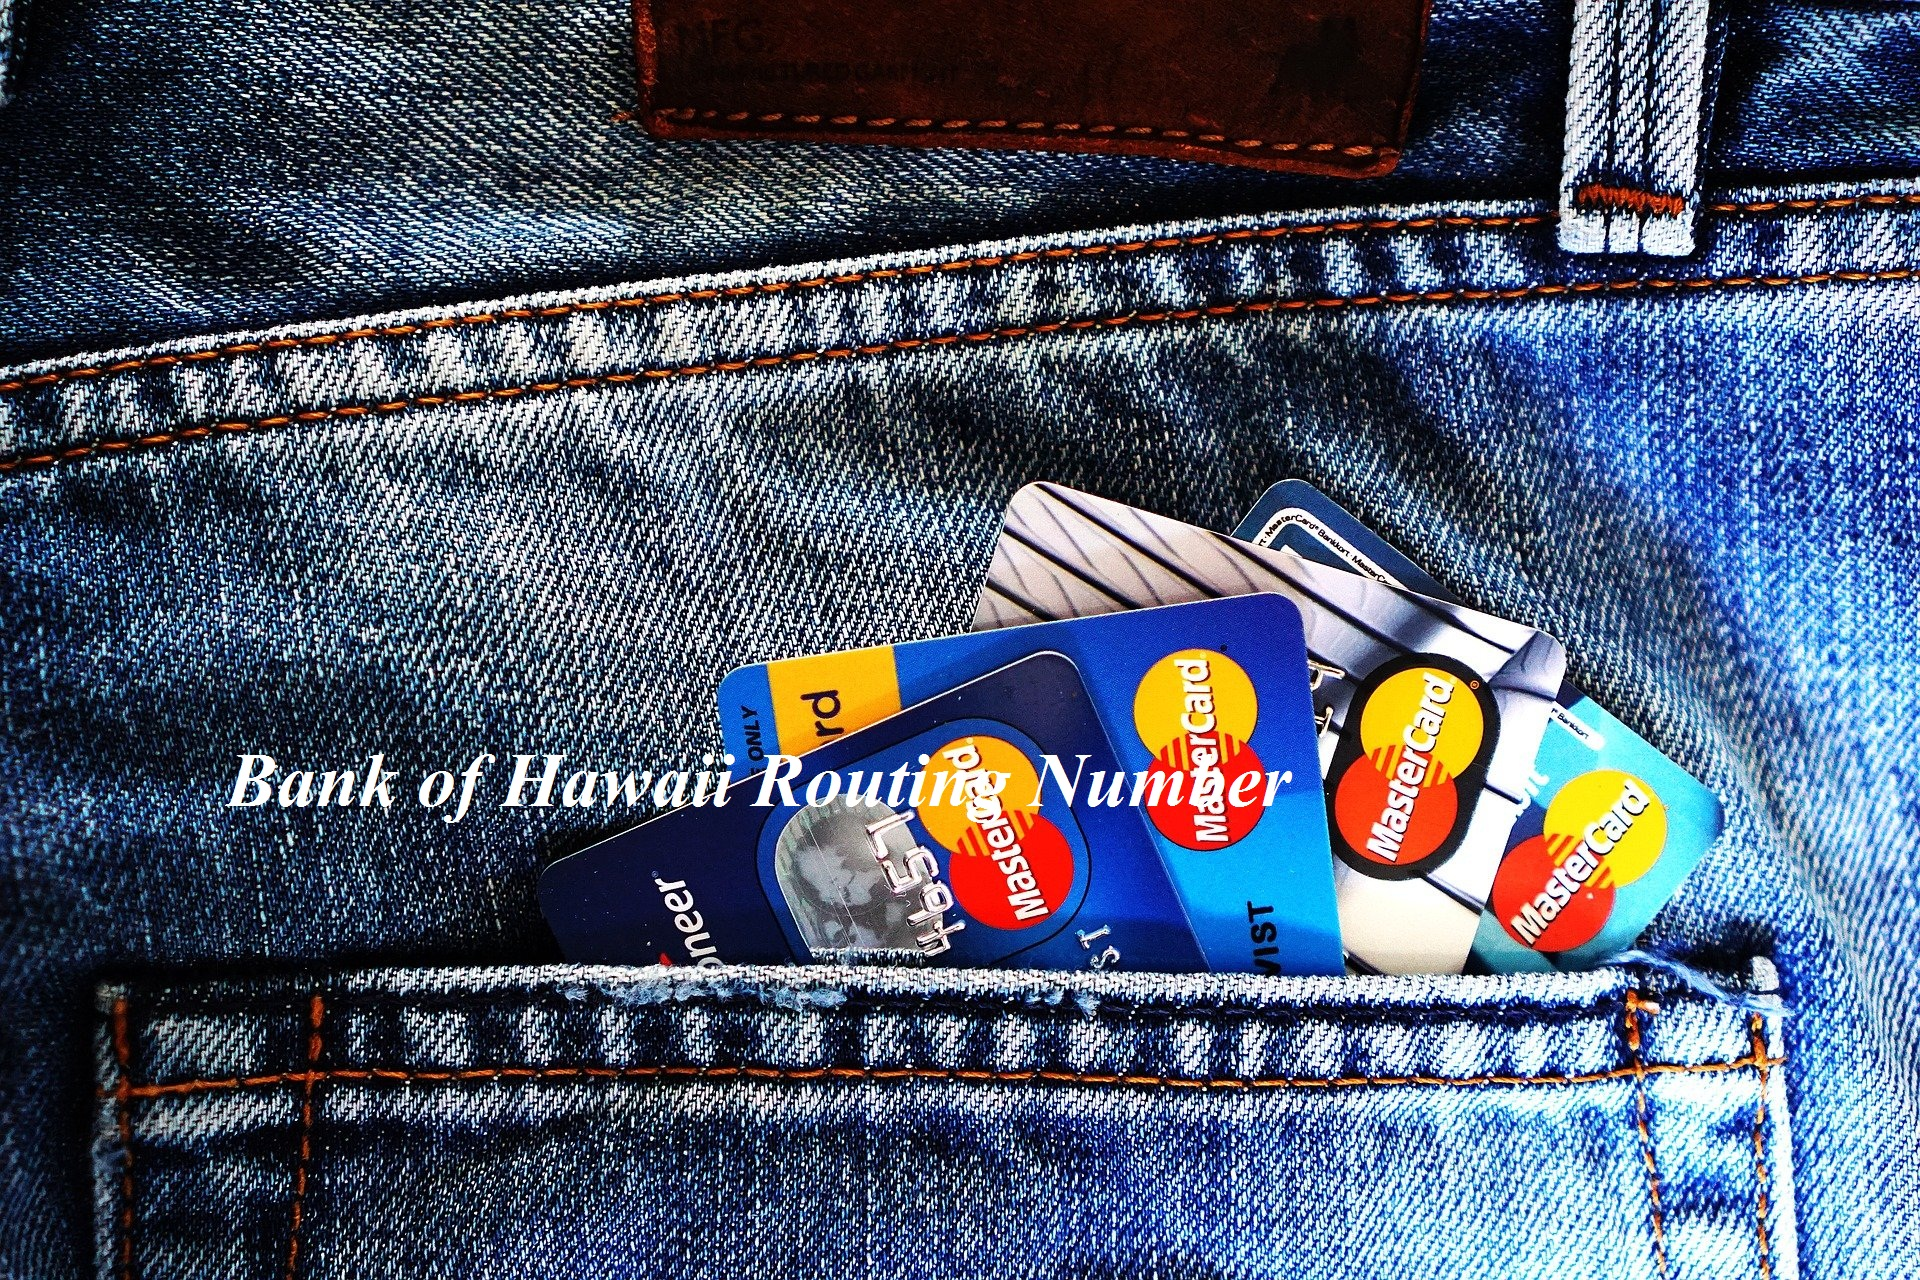 Bank of Hawaii Routing Number